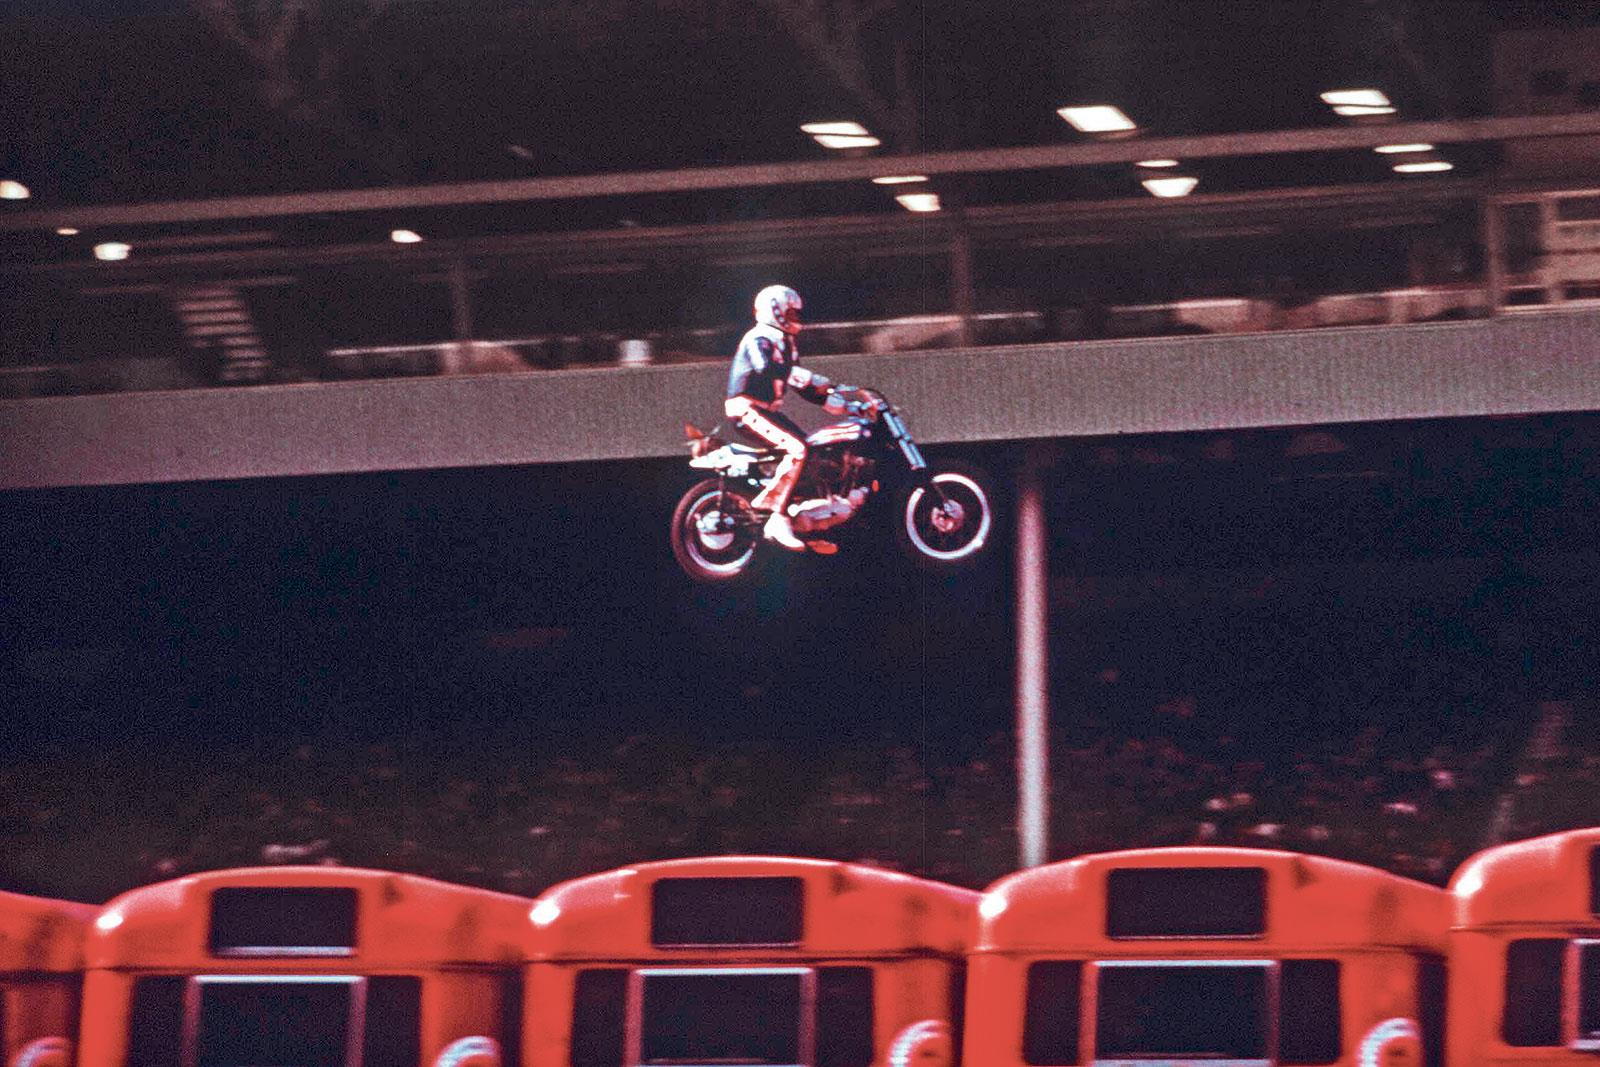 Evel Knievel S Movie Bike Up For Auction: Whatever Happened To Evel Knievel's Bikes?